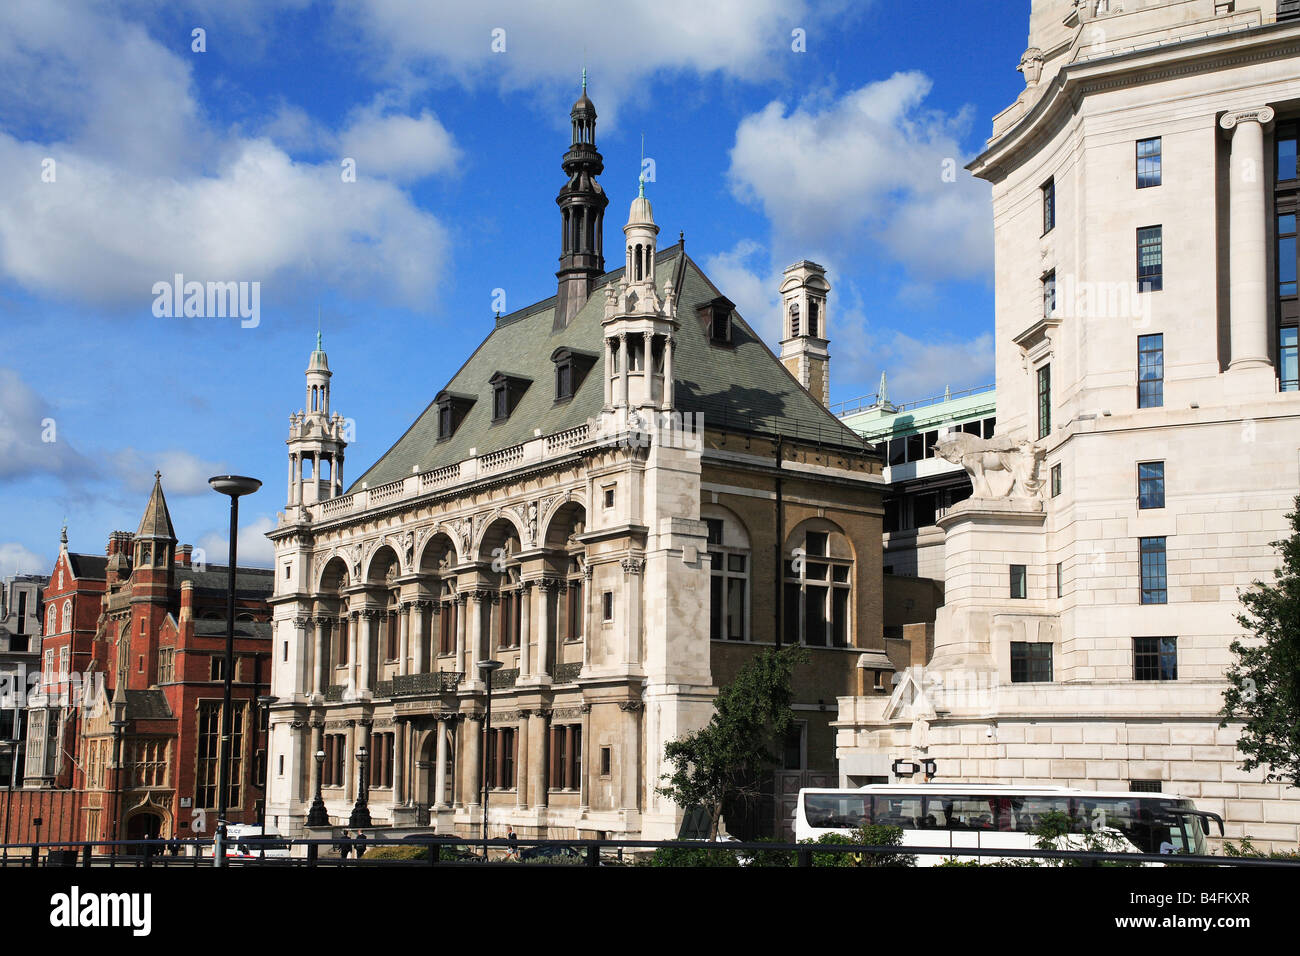 Unilever Office Building and Old City of London School by the Blackfriar Bridge City of London England UK - Stock Image